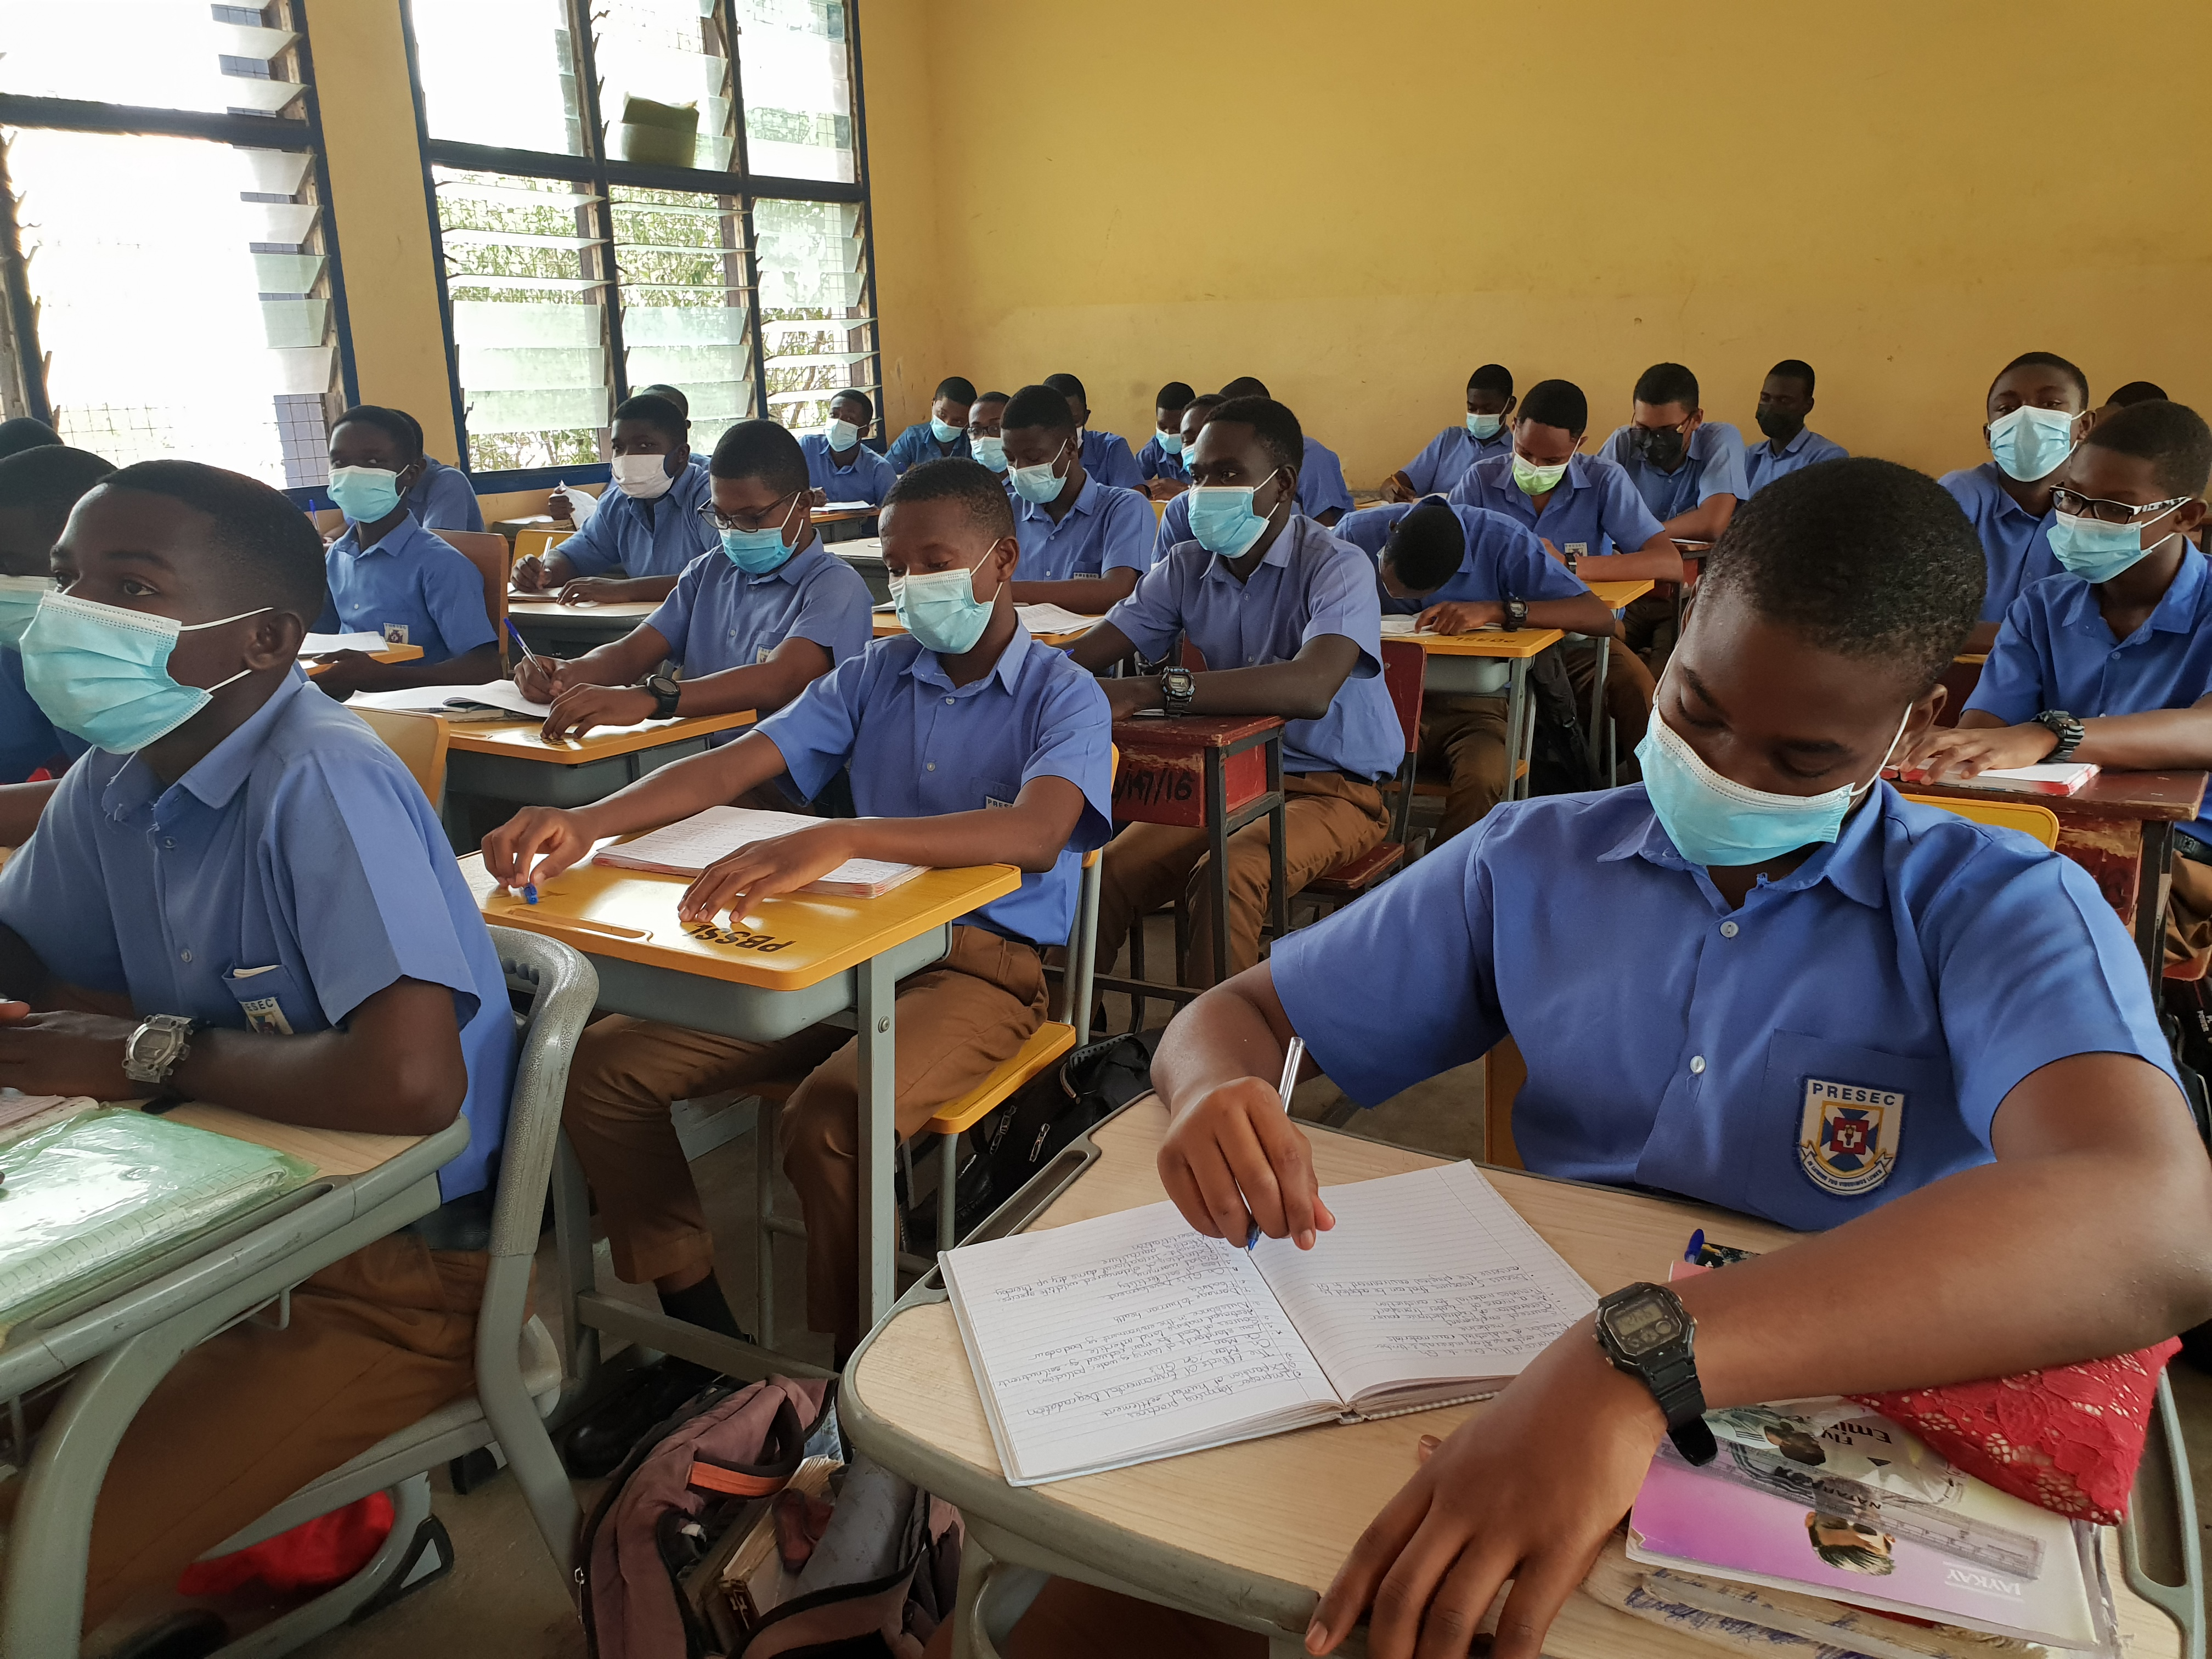 UN in Ghana calls on stakeholders in the education sector to make schools safe